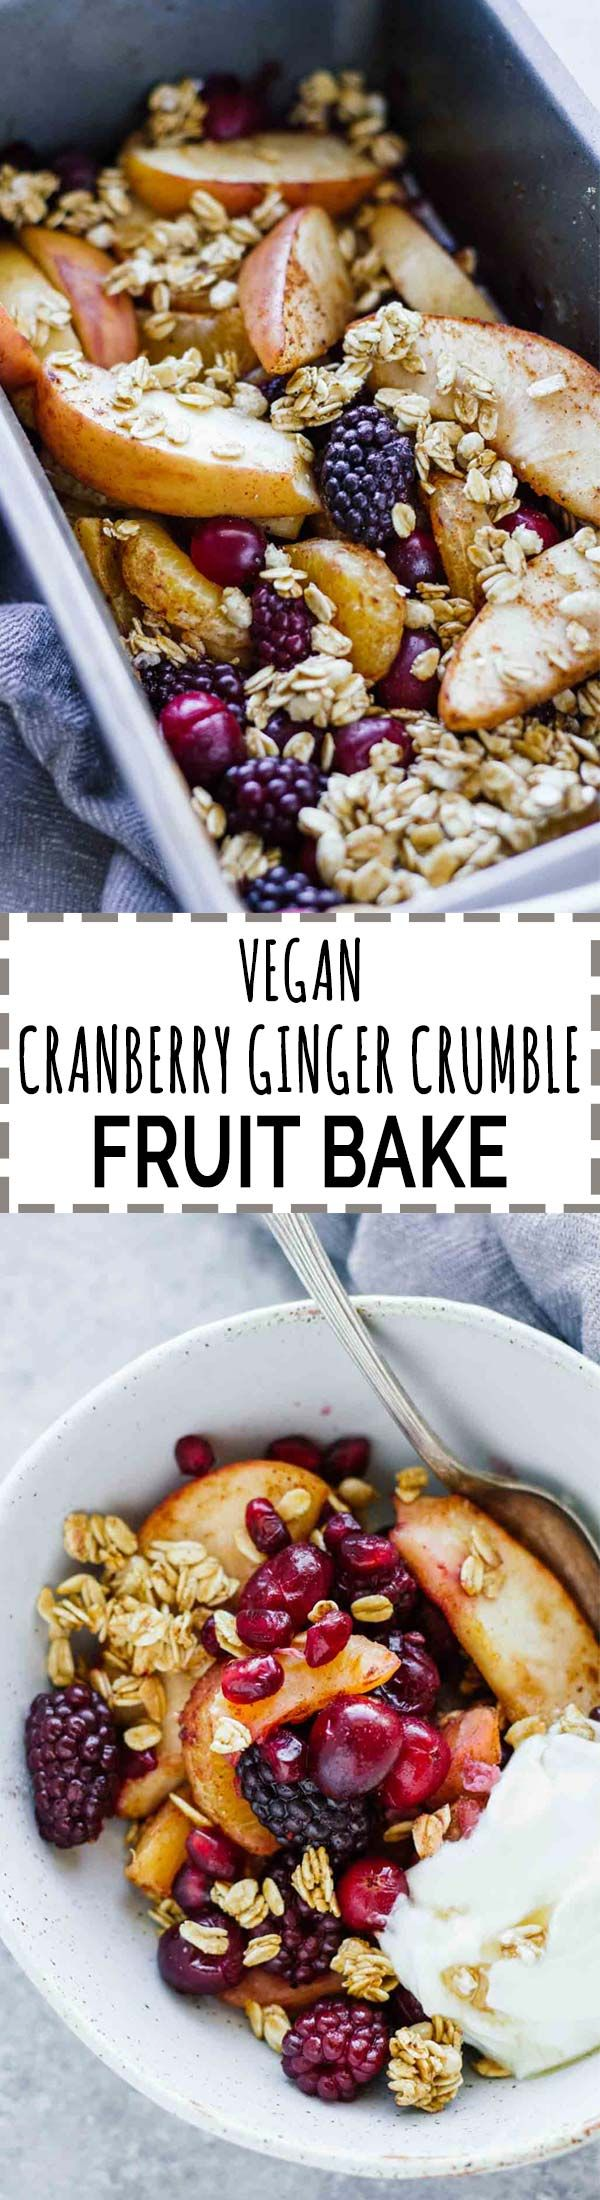 Vegan Cranberry Ginger Crumble Fruit Bake! SUPER easy to make (15 minutes or less), vegan, vegetarian, gluten-free, refined sugar free!